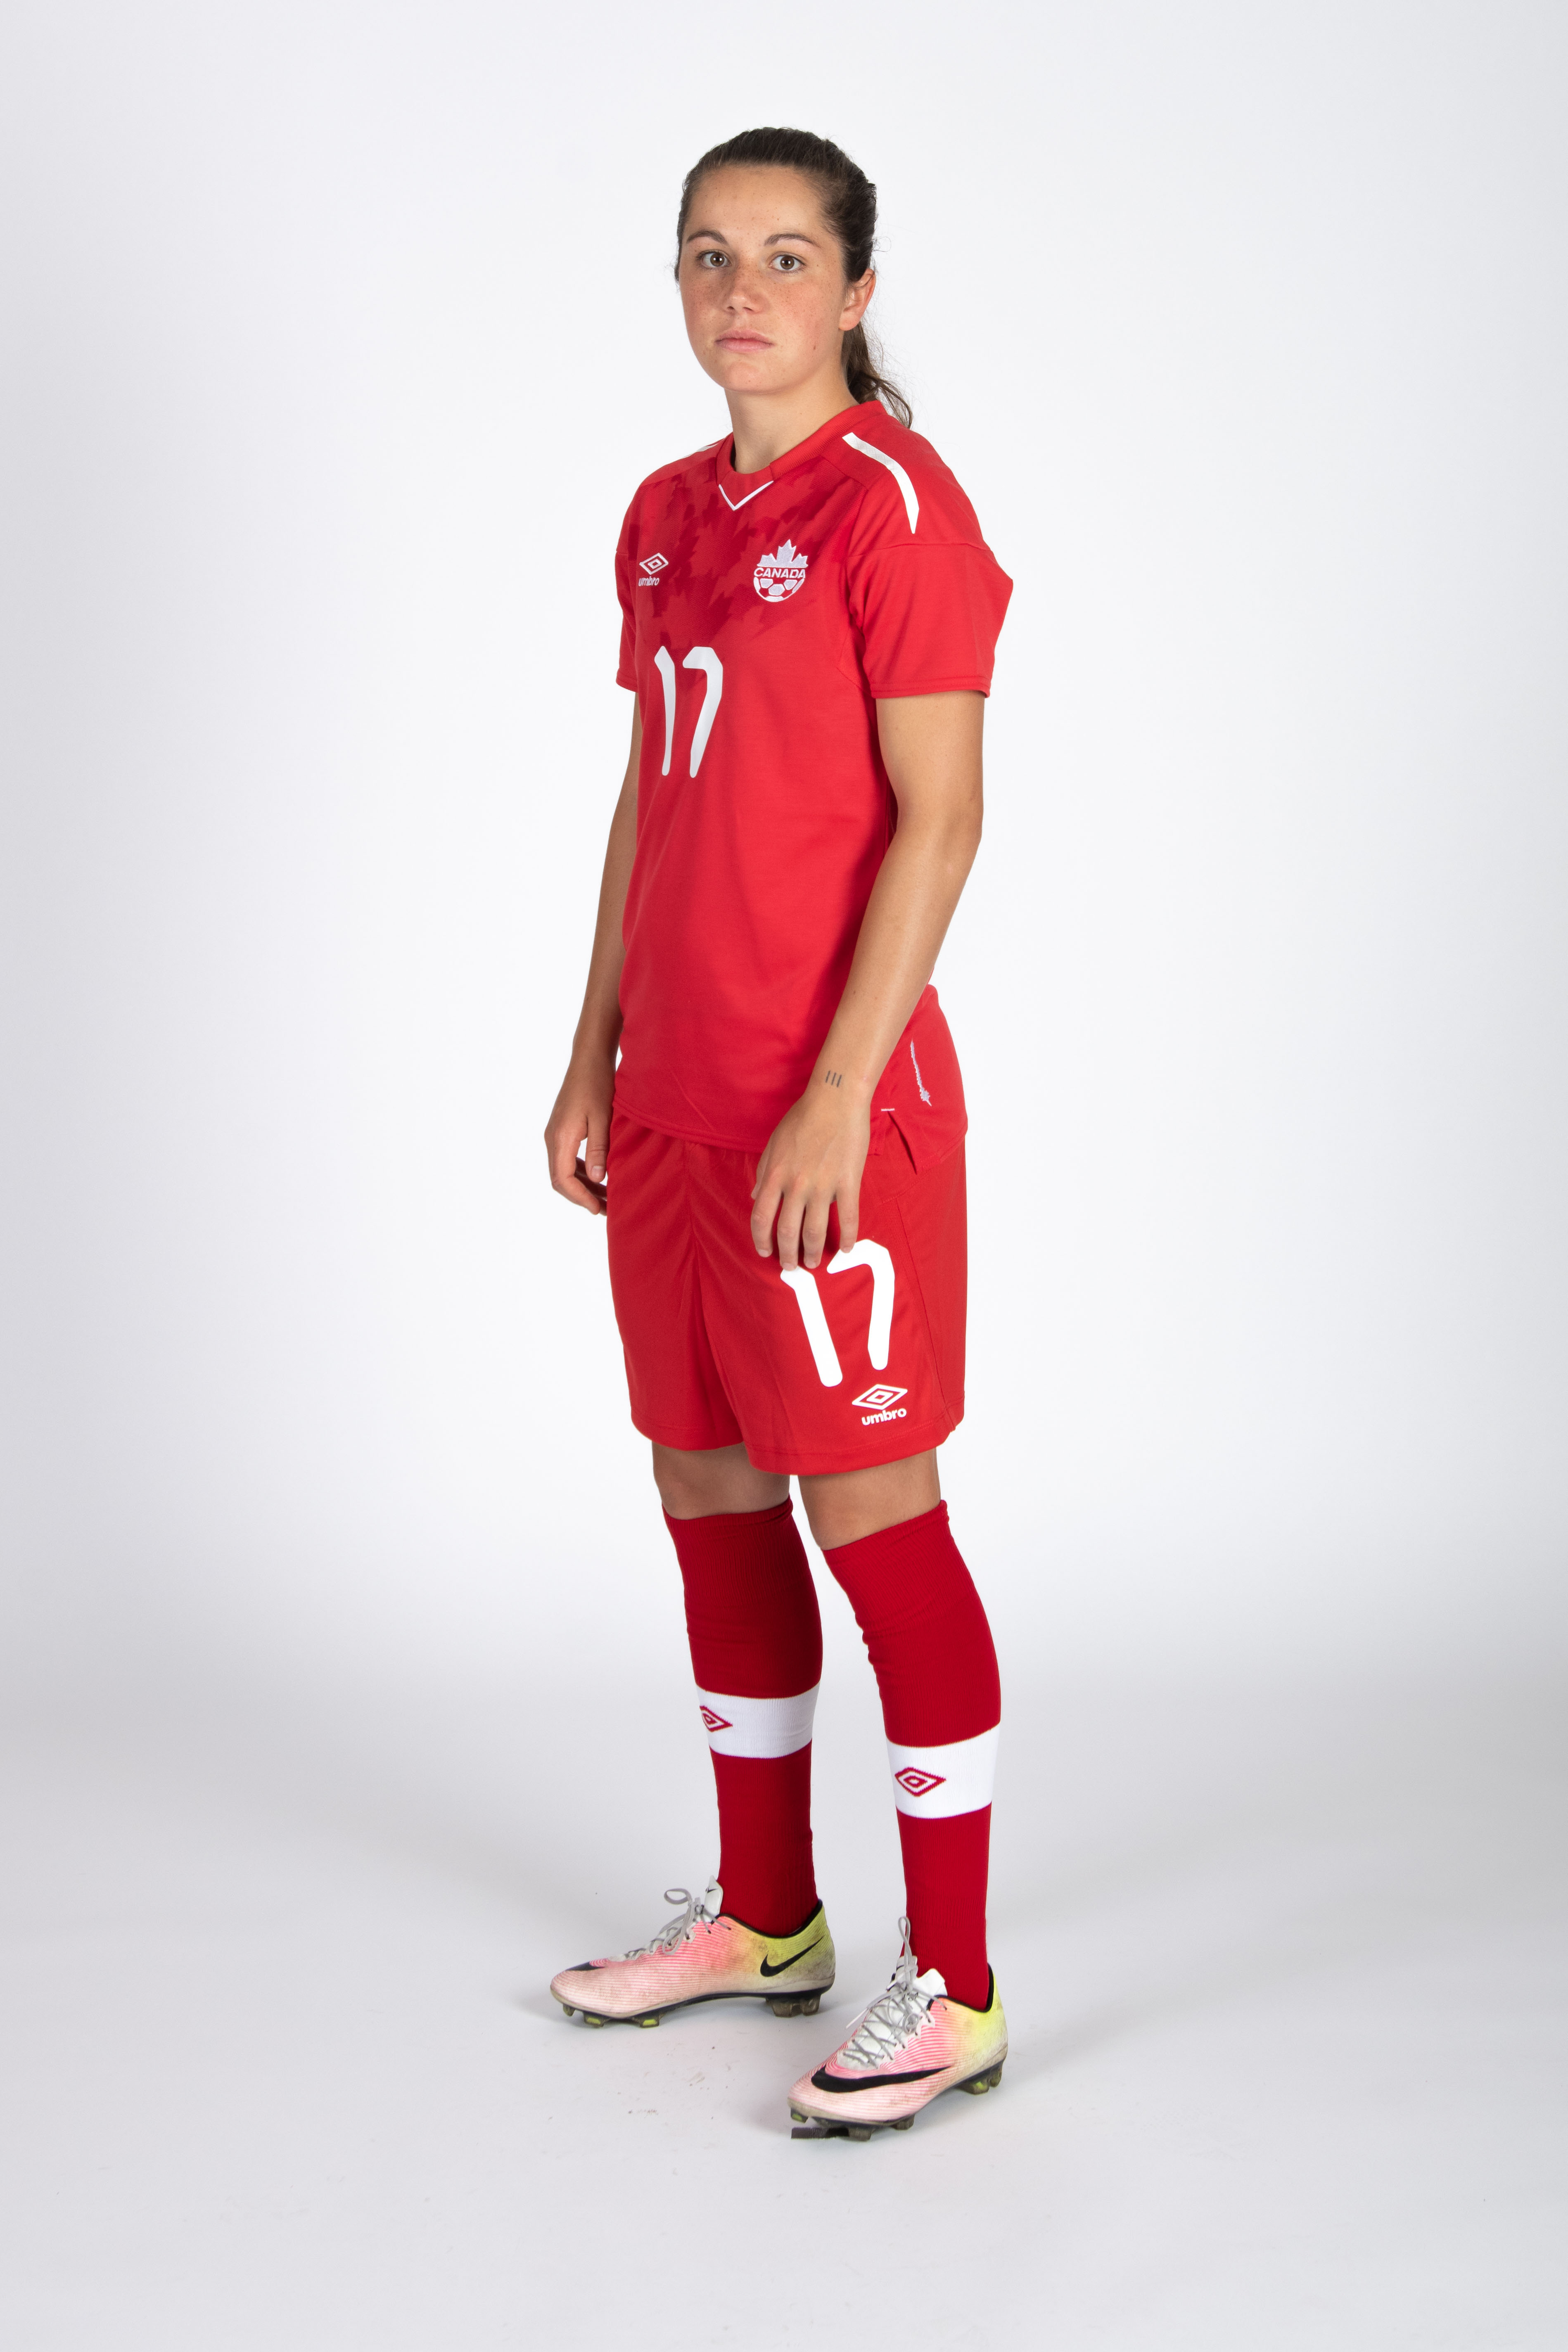 20180604_CANWNT_Fleming_byBazyl22